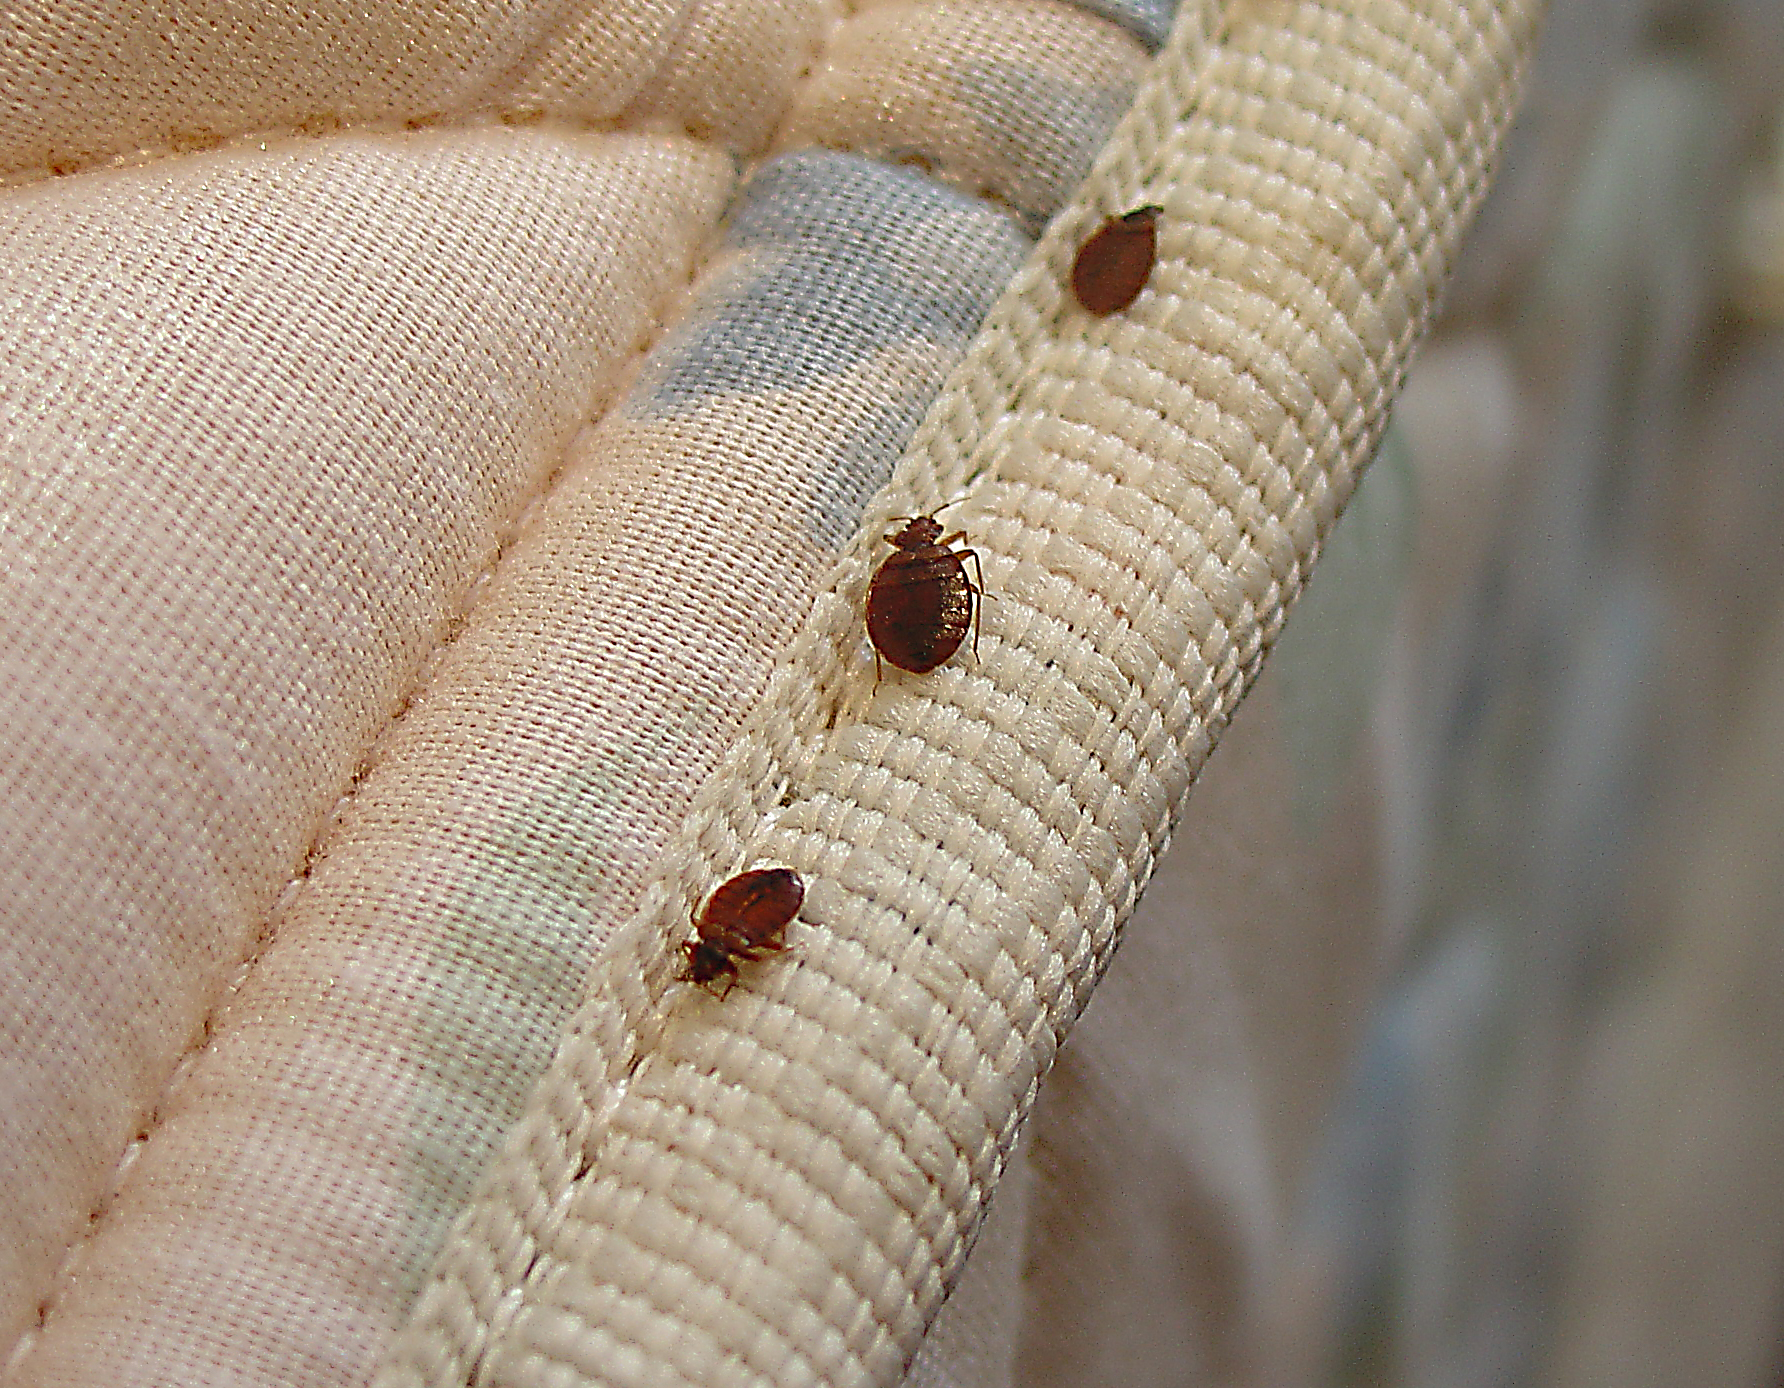 Getting Rid Of Bed Bugs 10 Places Bed Bugs Love To Hide